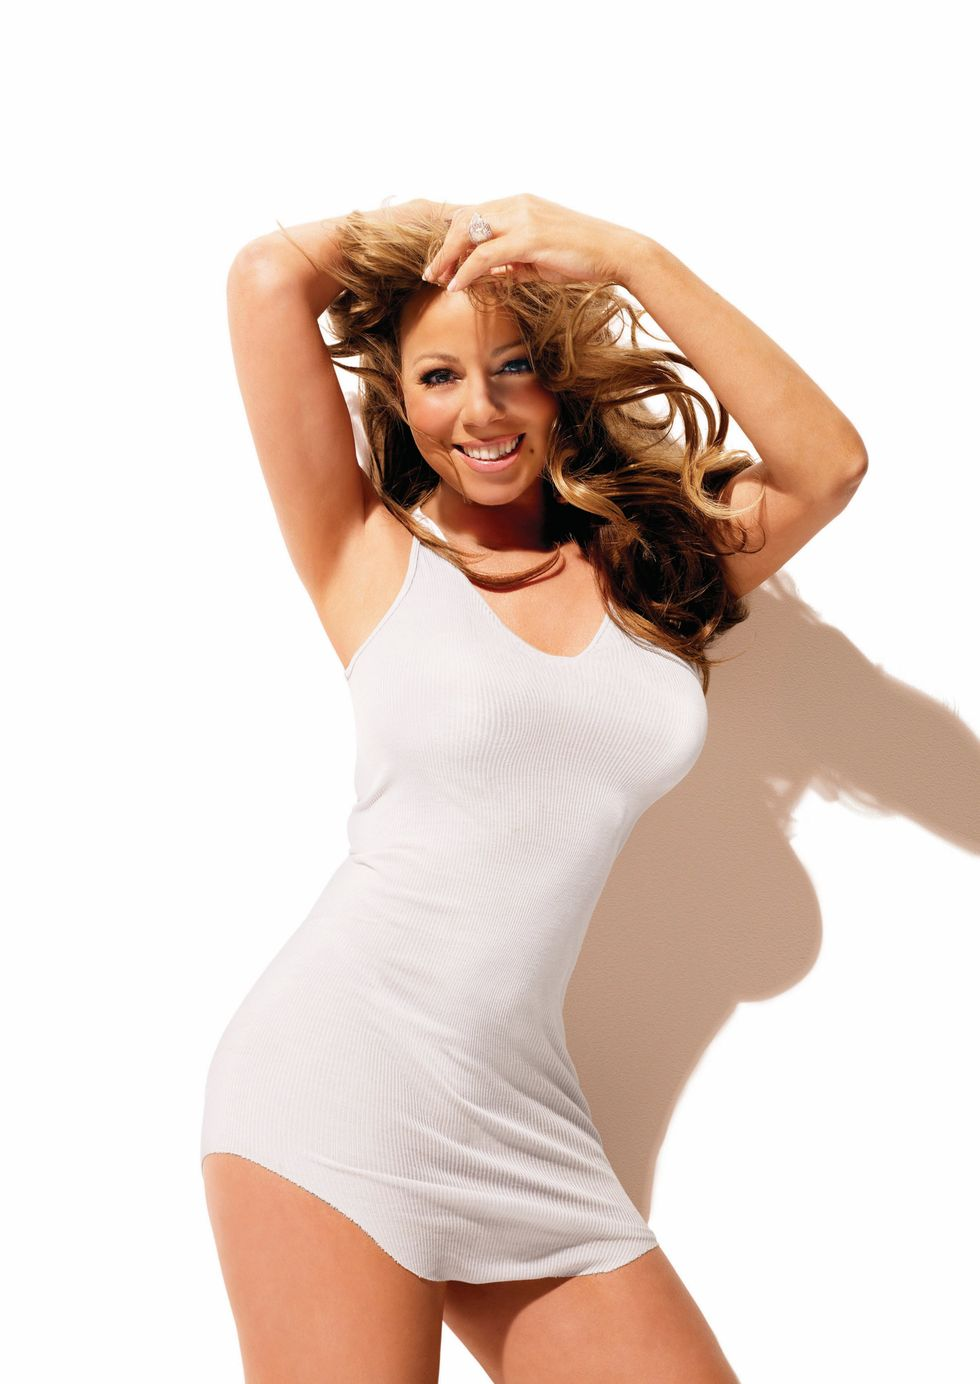 Hollywood Stars: Mariah Carey - Memoirs of an Imperfect ... |Mariah Carey Memoirs Of An Imperfect Angel Photoshoot